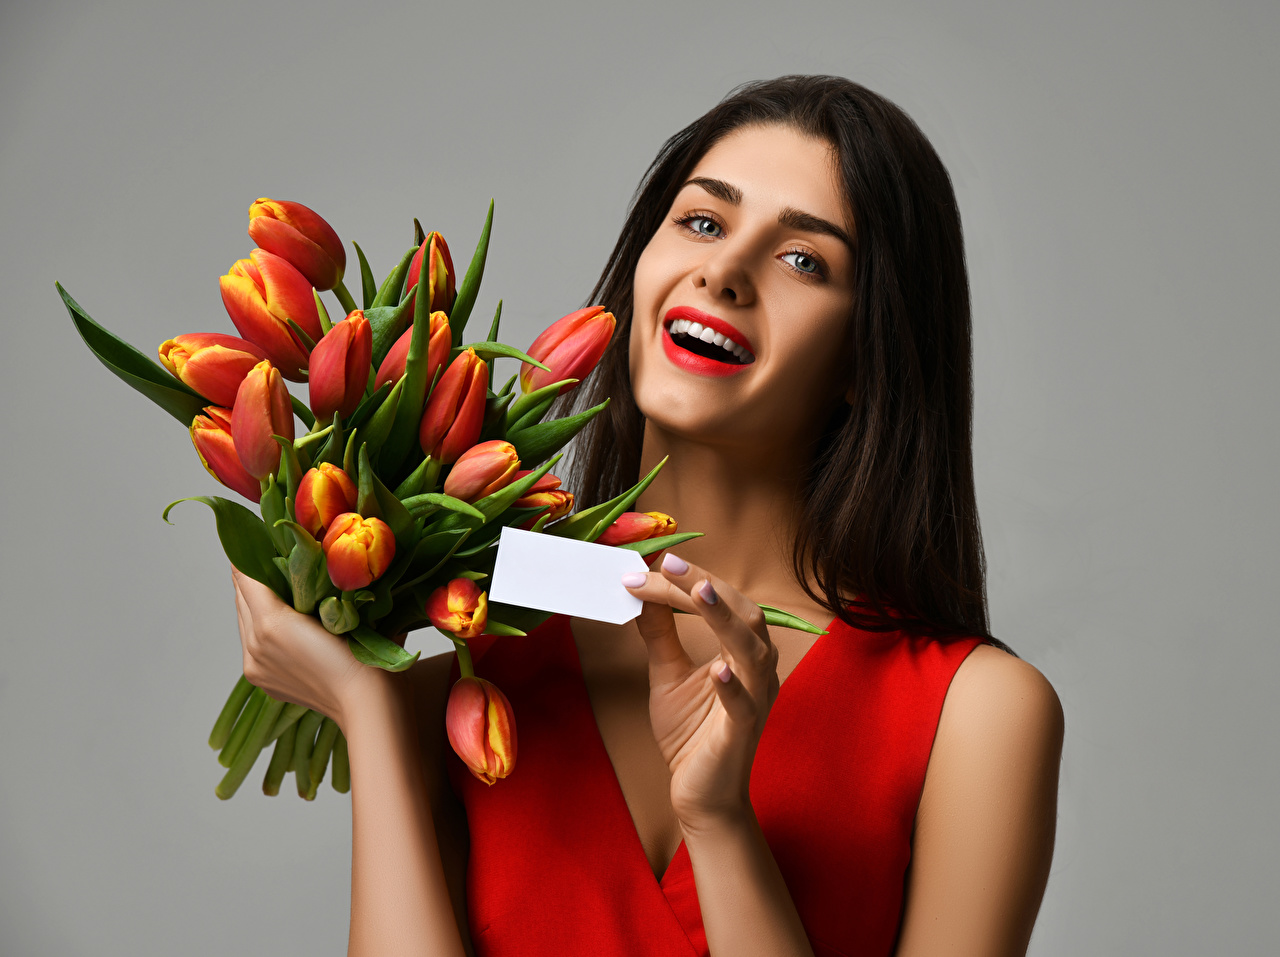 Wallpaper Brown haired happy bouquet Girls Tulips Gray background Joy joyful Bouquets tulip female young woman